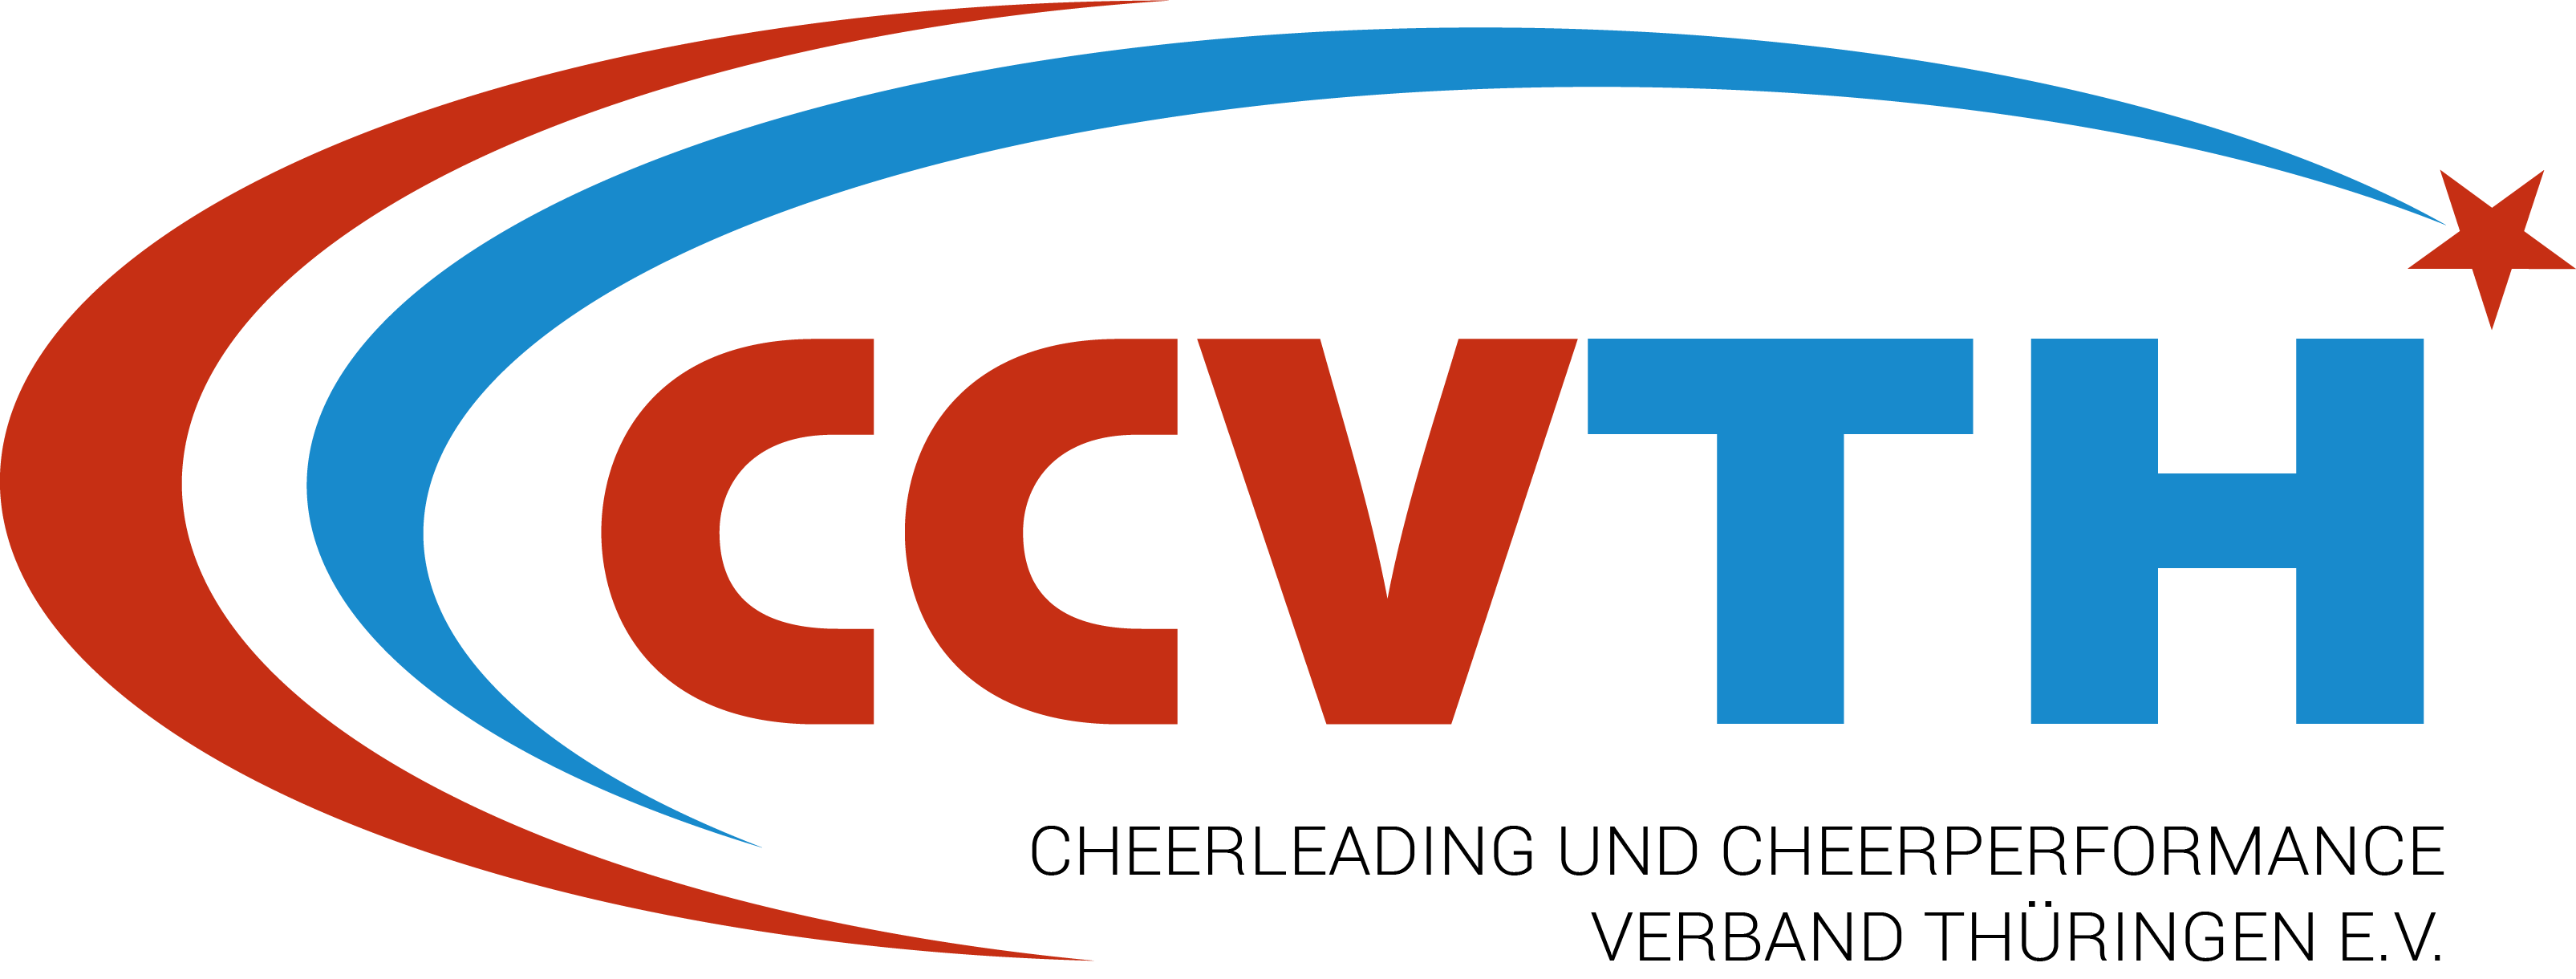 CHEERLEADING UND CHEERDANCE VERBAND THÜRINGEN E.V.